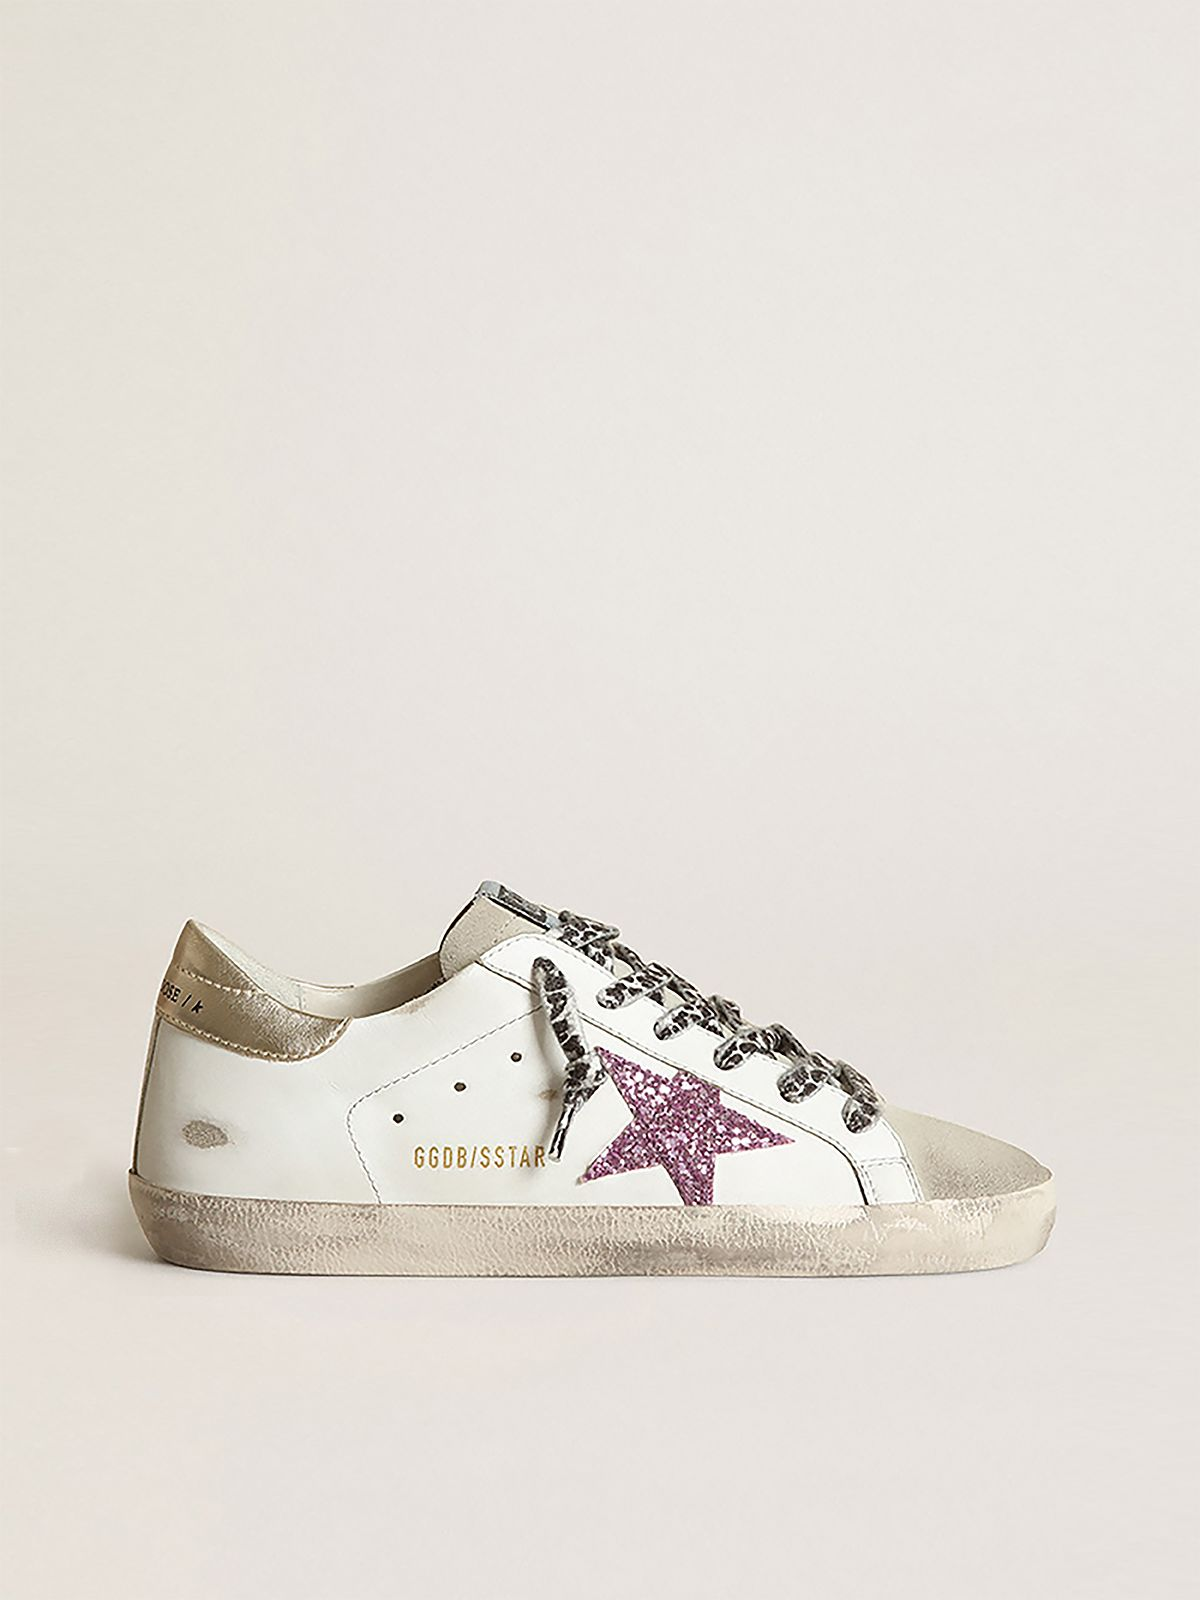 Super-Star sneakers with glitter and gold heel tab